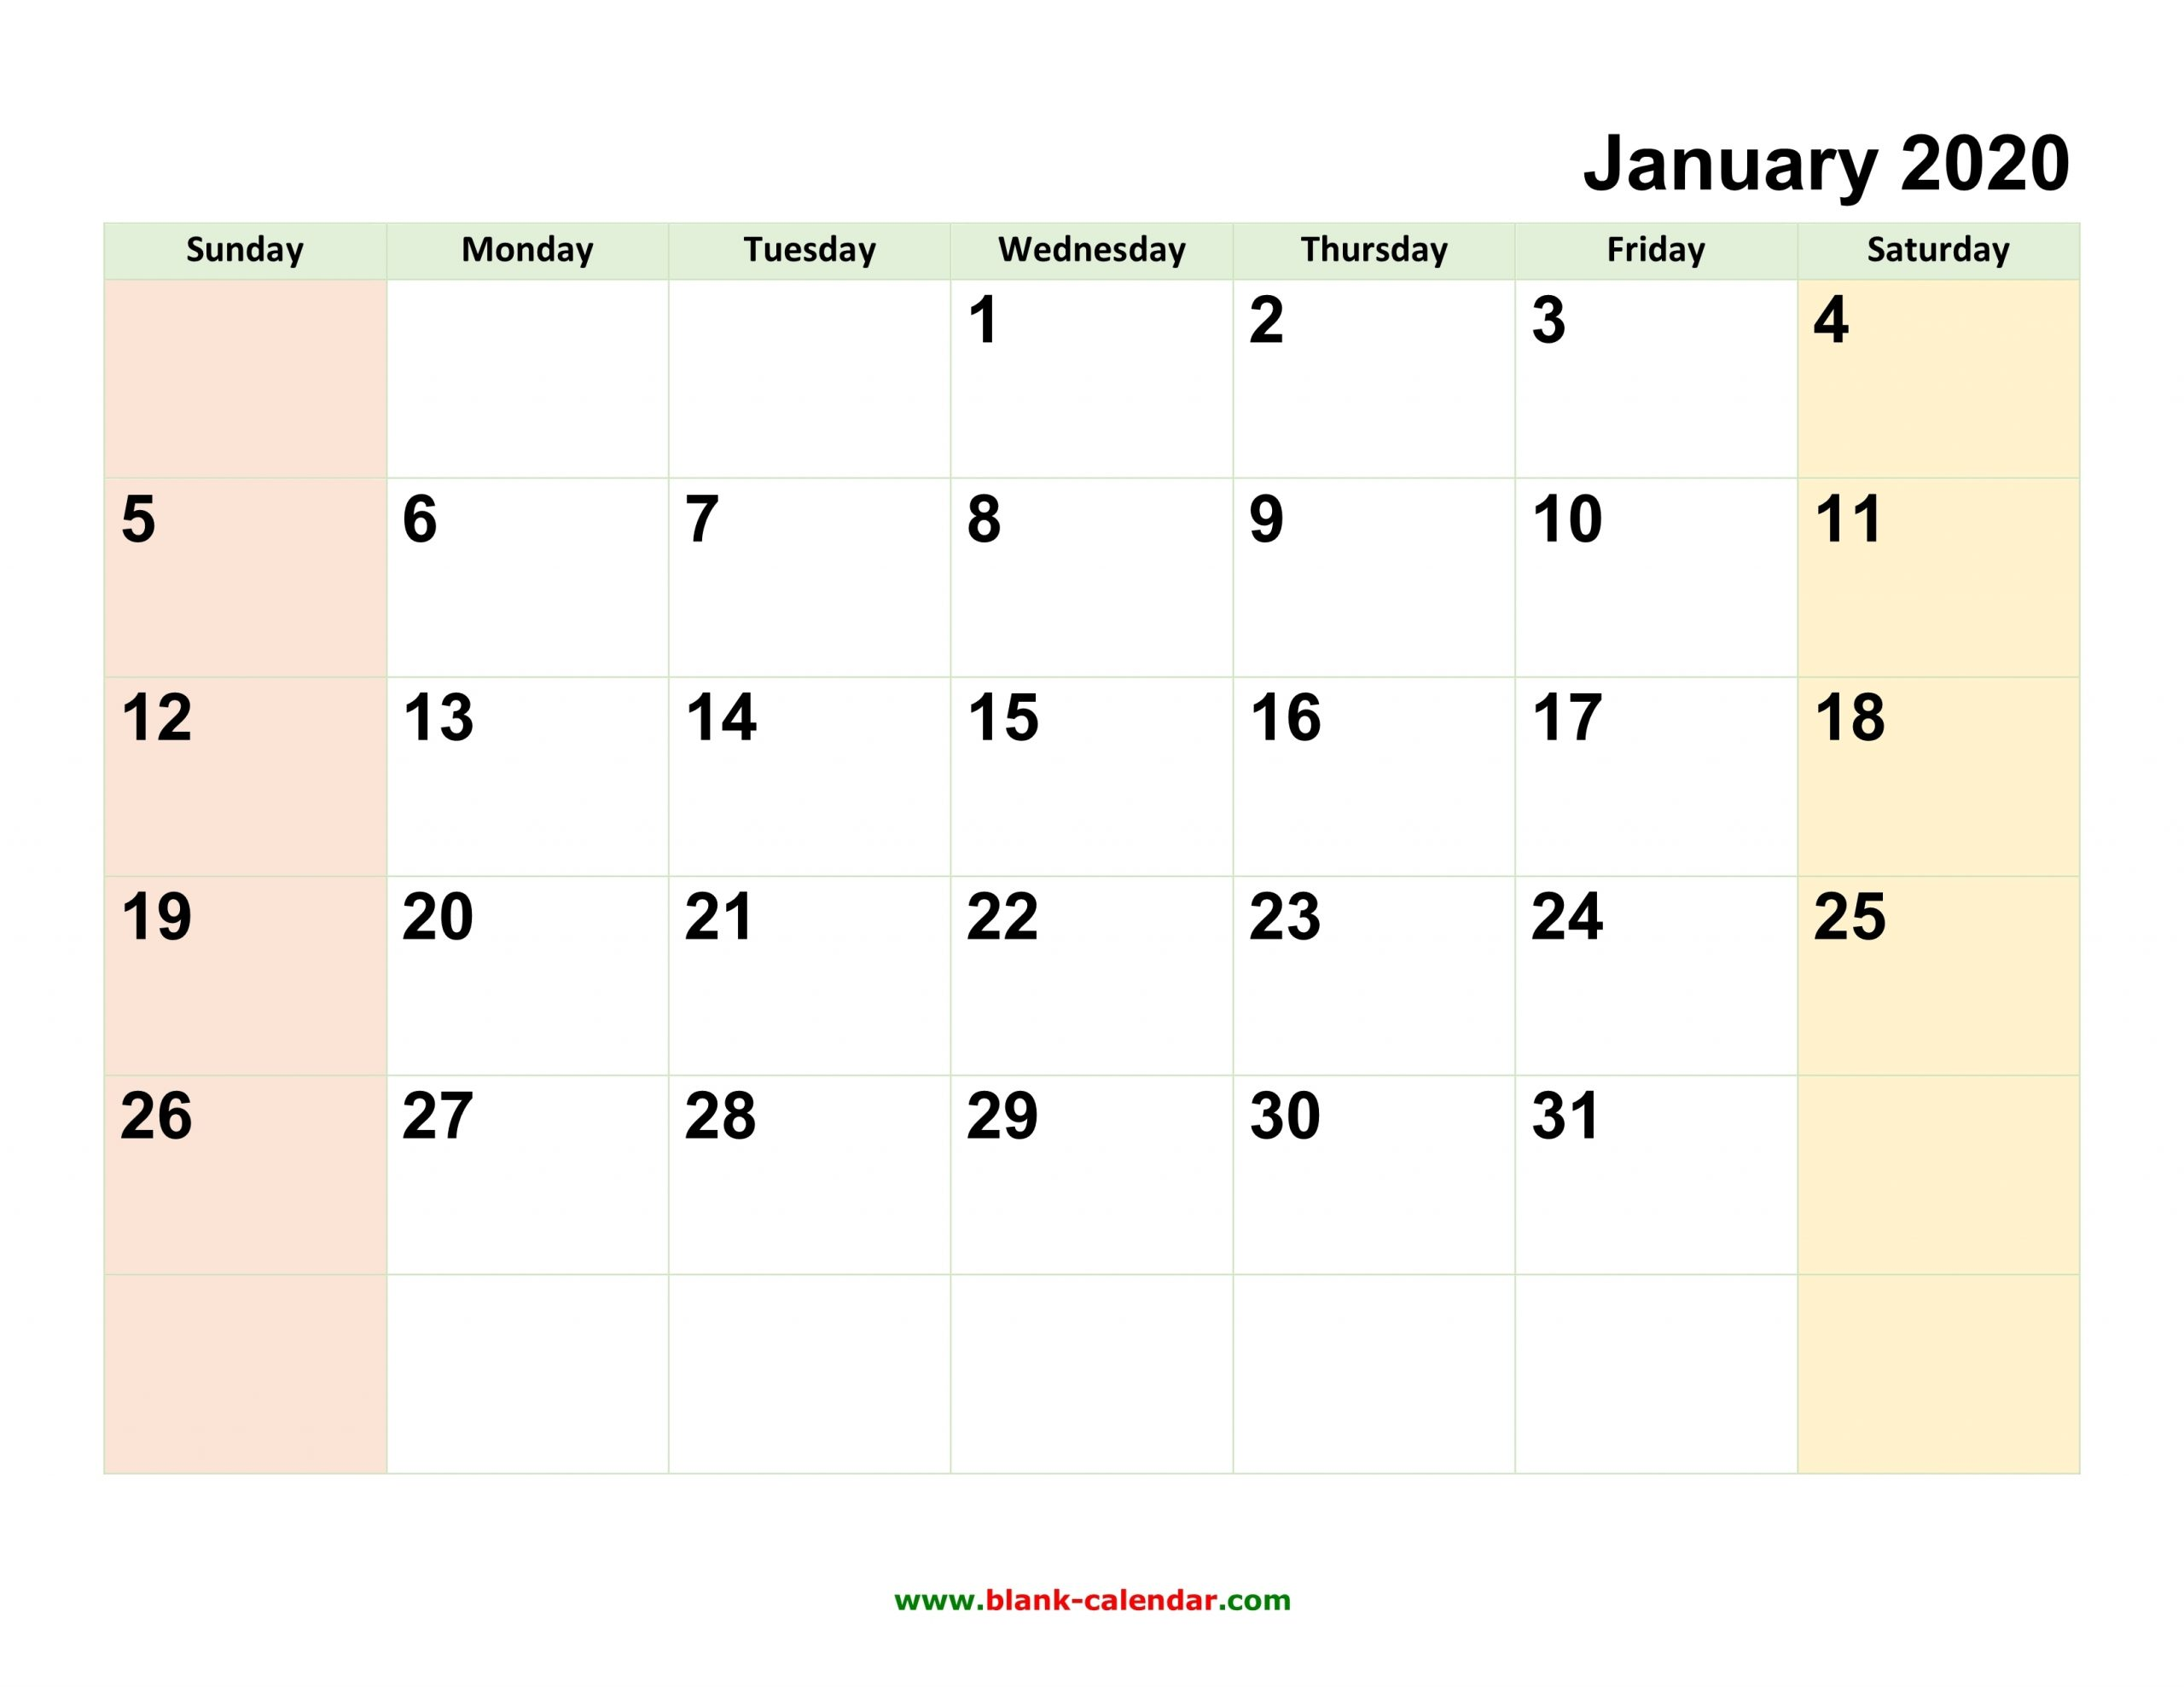 Monthly Calendar 2020 | Free Download, Editable And Printable regarding Blank Calendar 2020 Printable Monthly